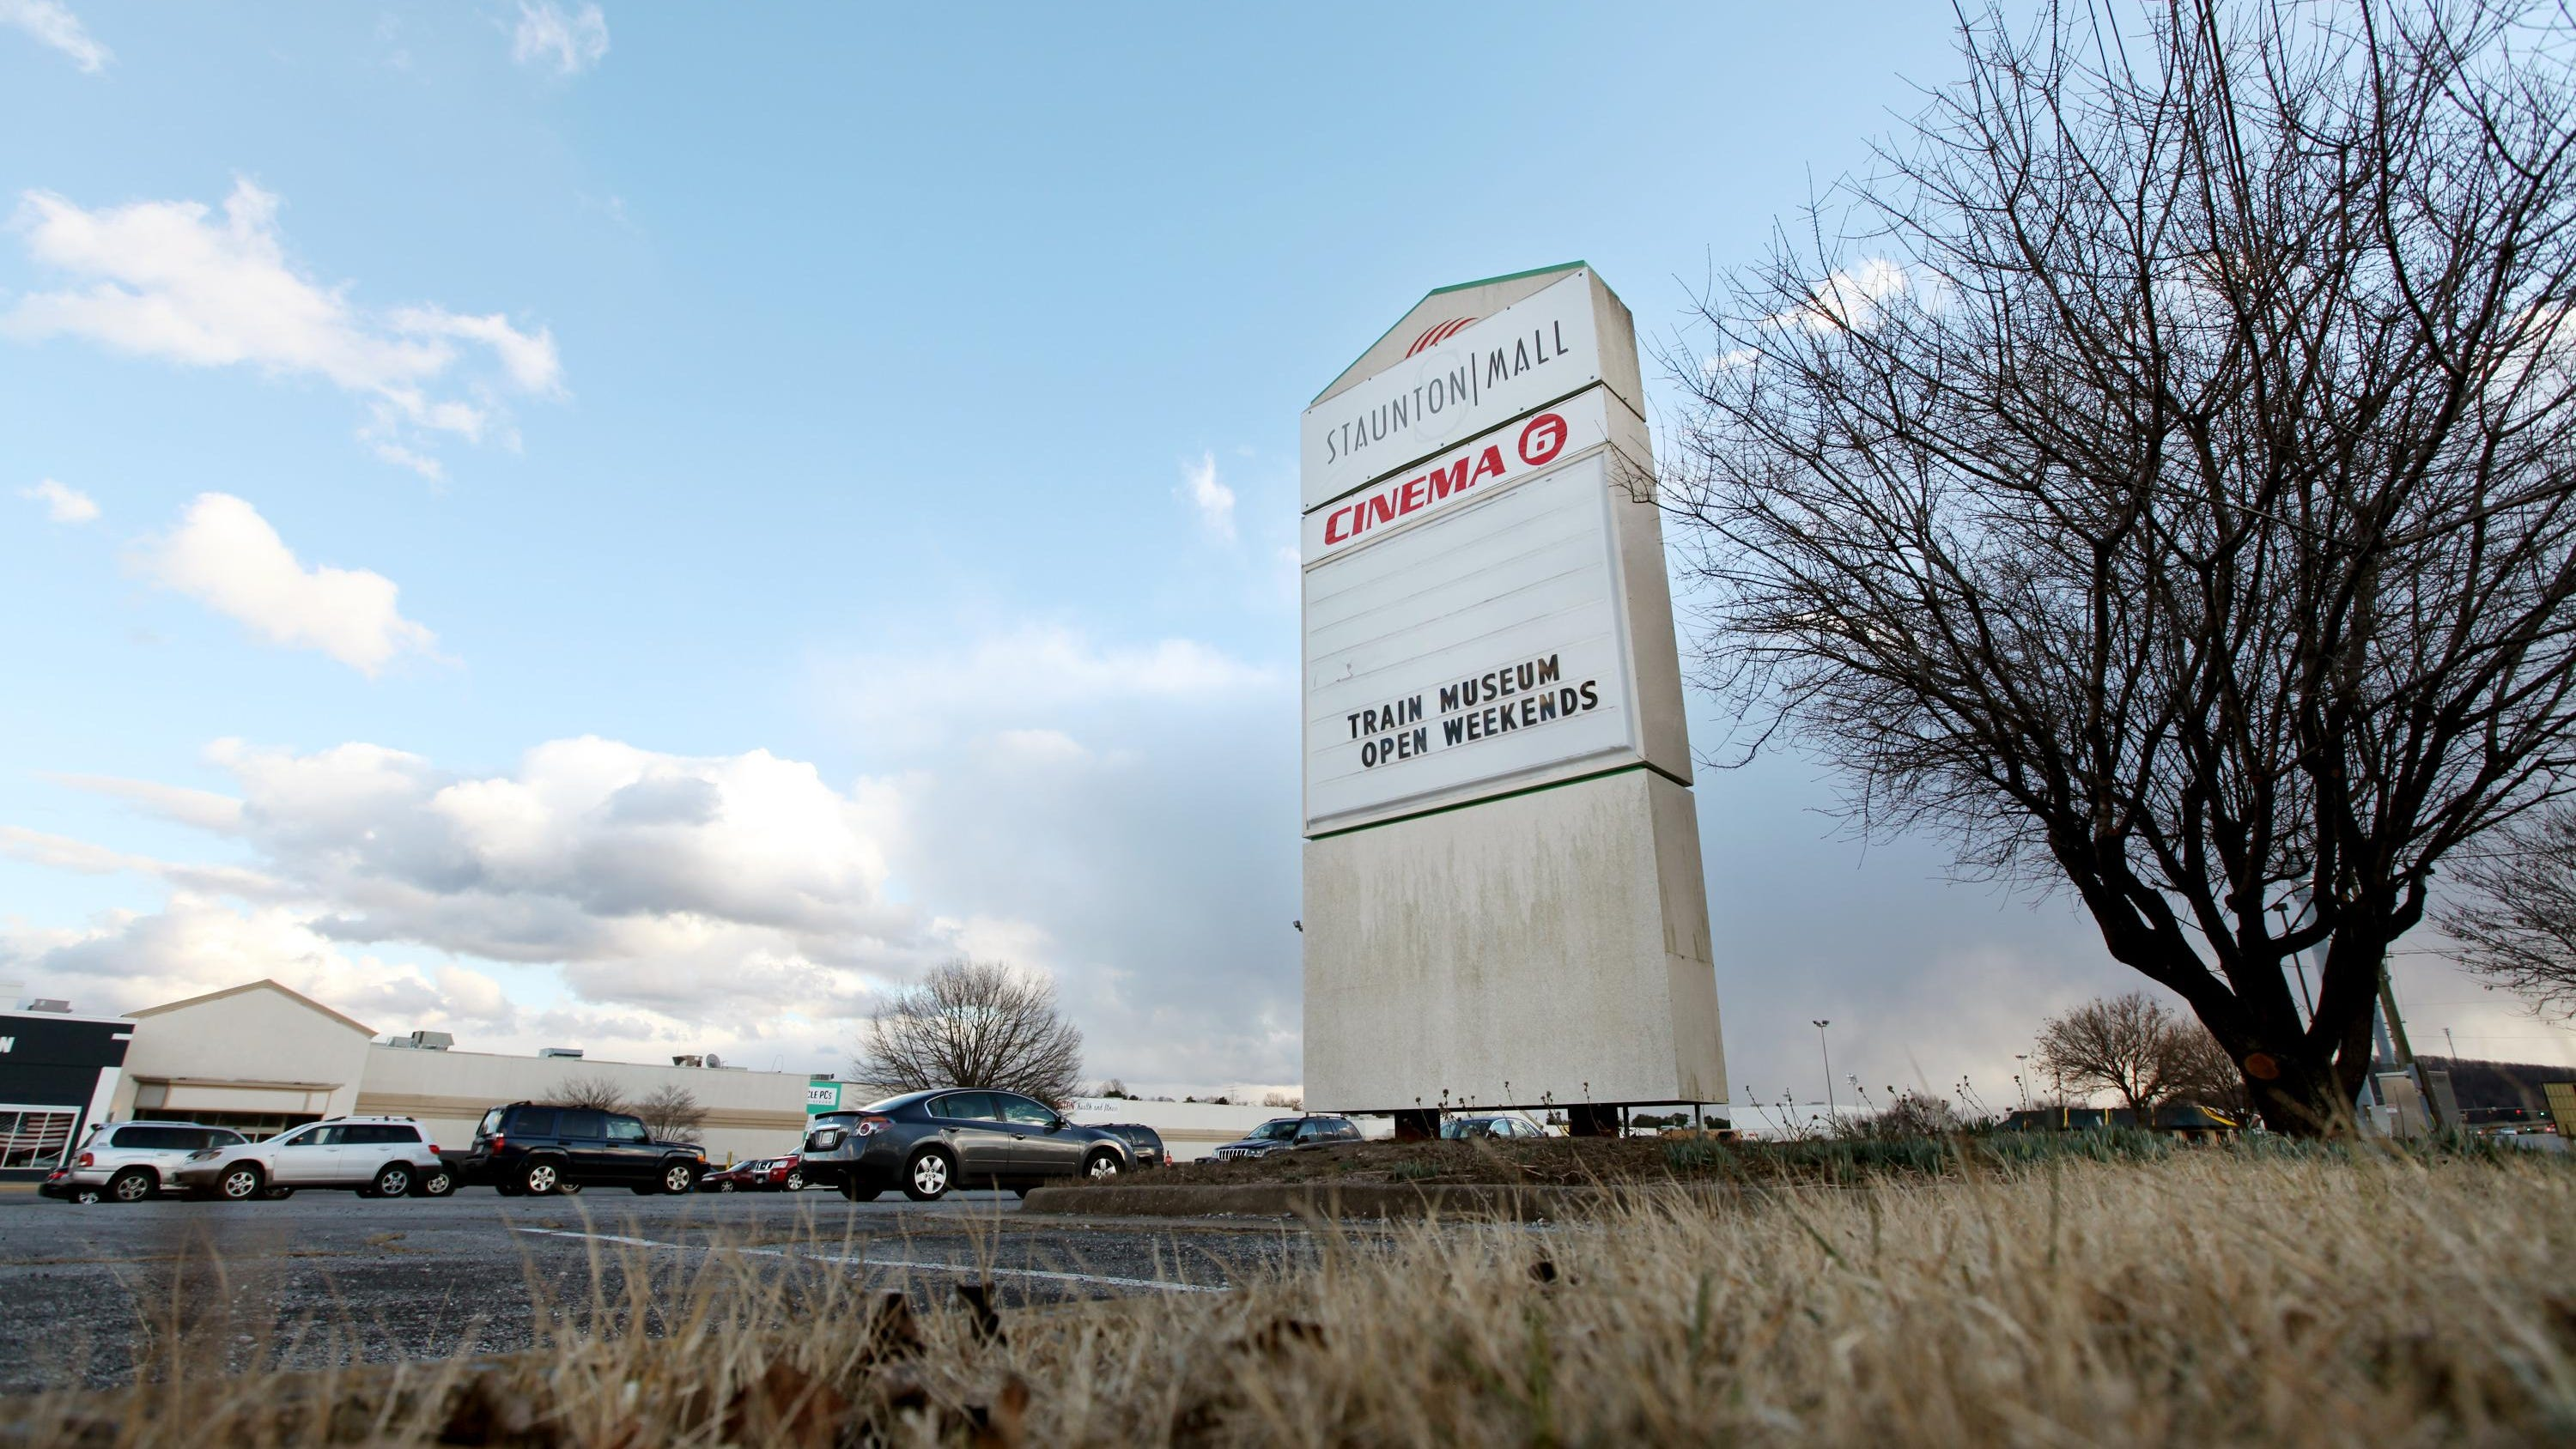 Staunton Mall: Here's what the letter to tenants said